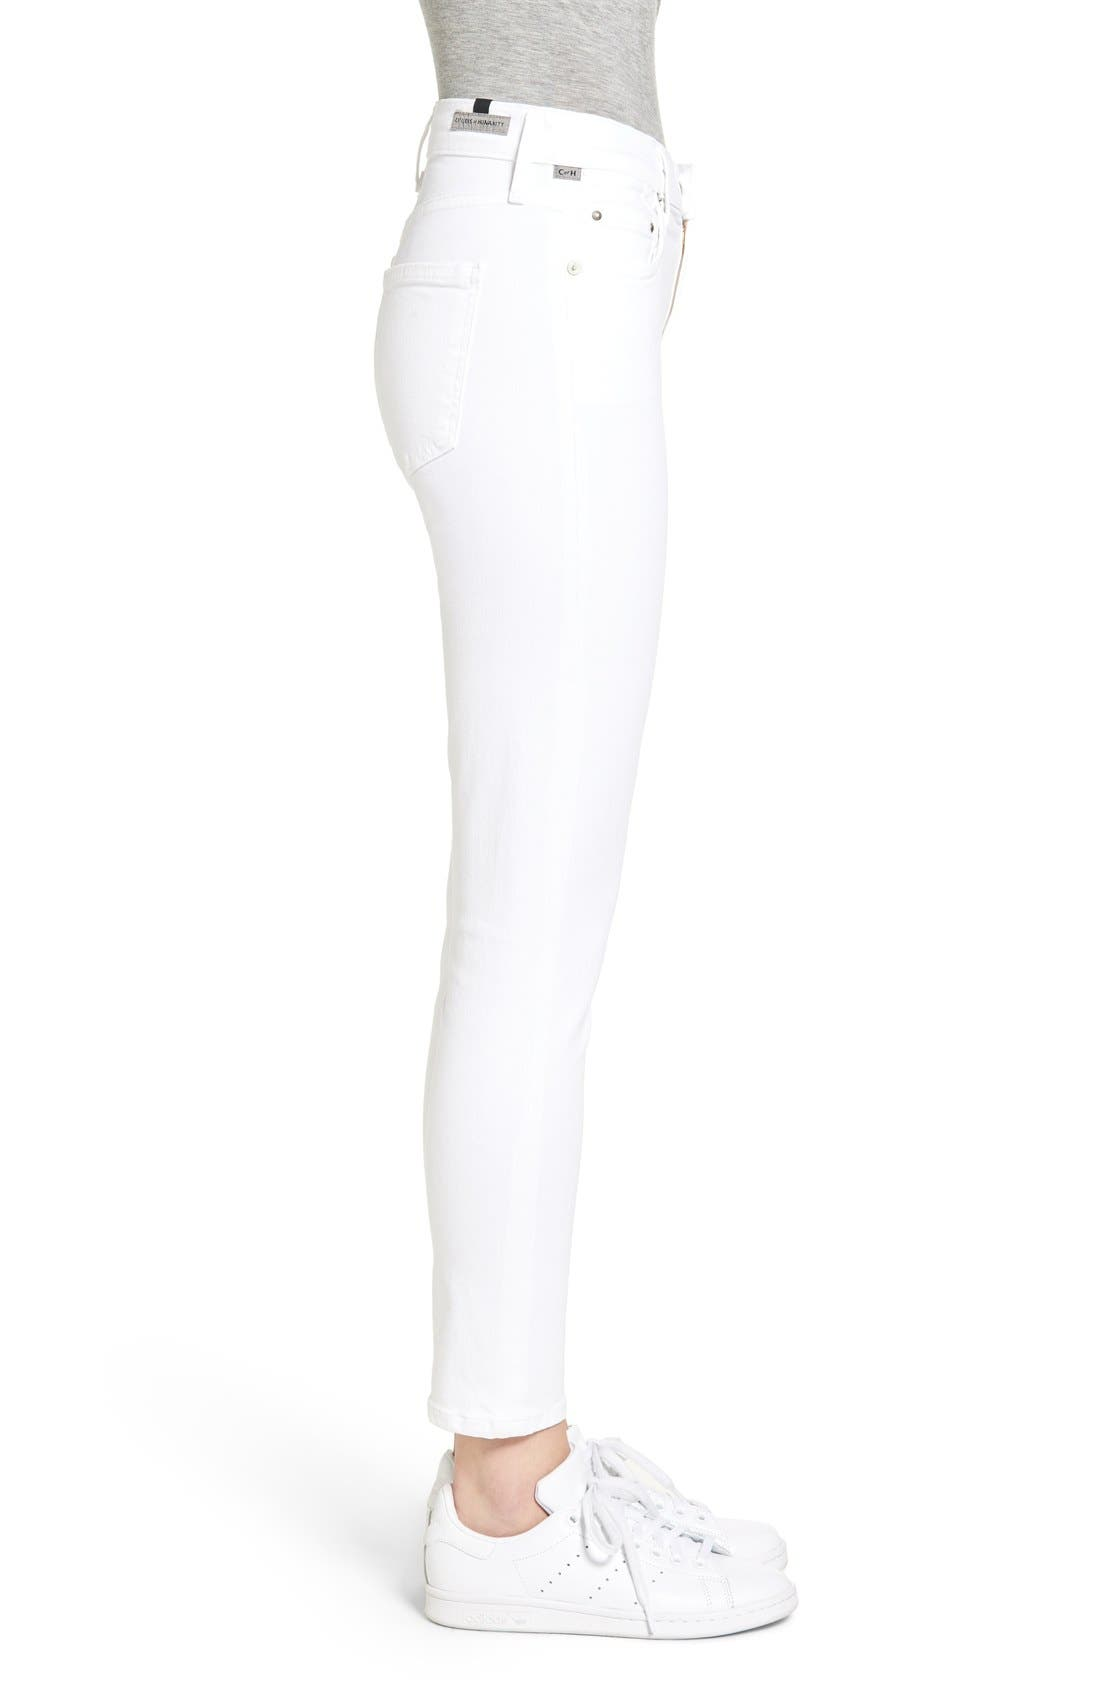 Alternate Image 3  - Citizens of Humanity Rocket High Waist Crop Skinny Jeans (Sculpt White)